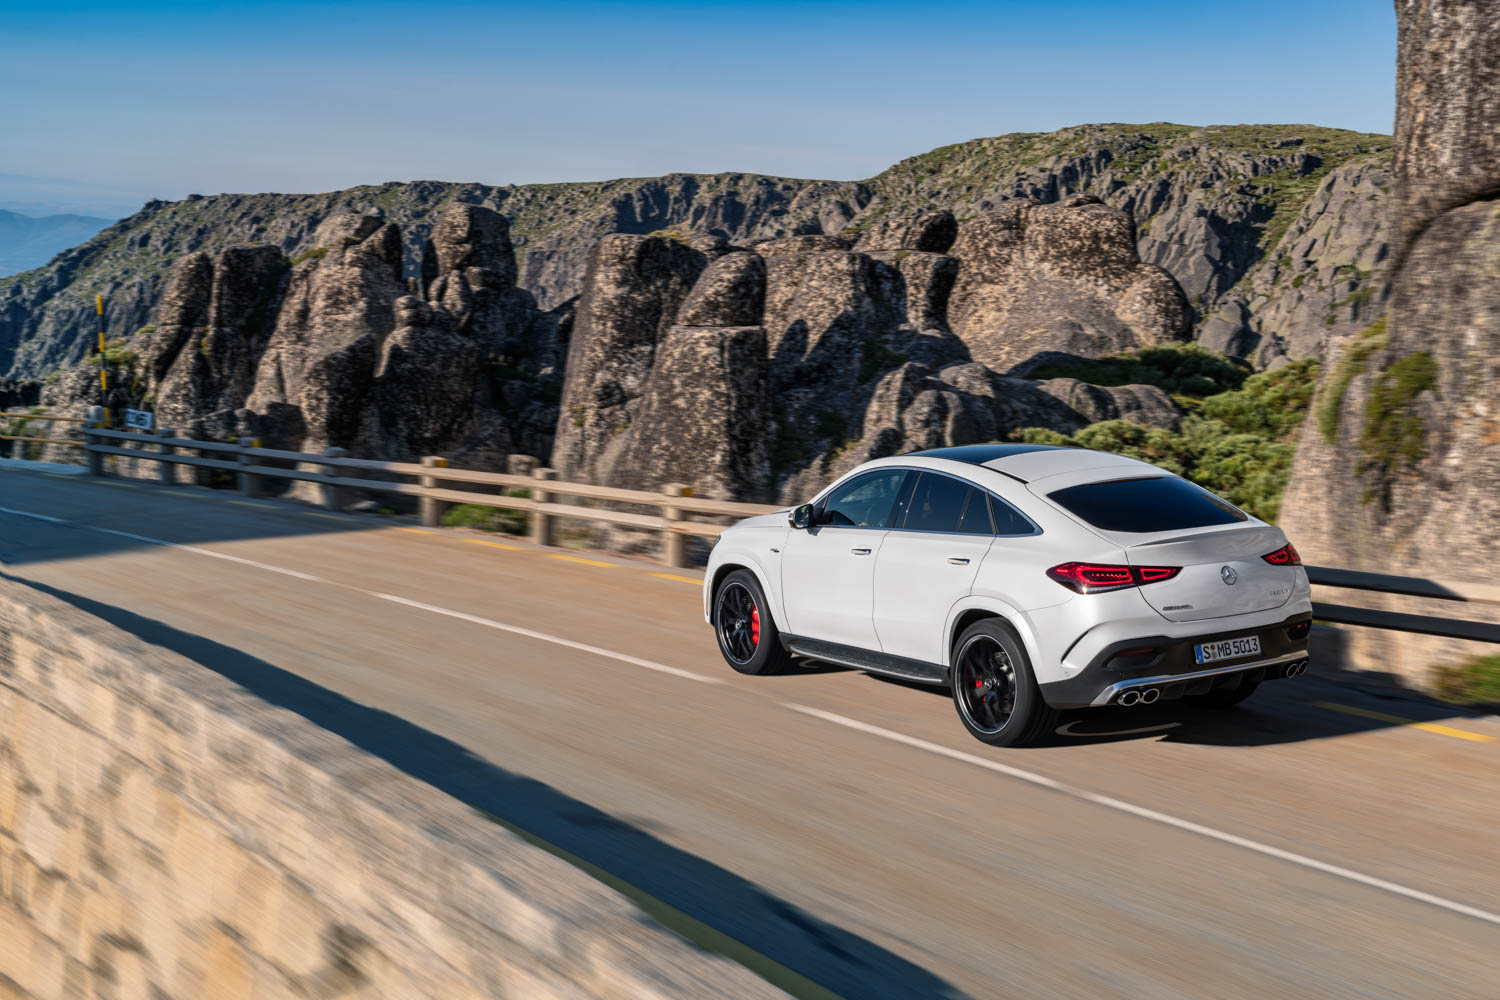 2021 Mercedes-AMG GLE 53 Coupe rear 3/4 driving